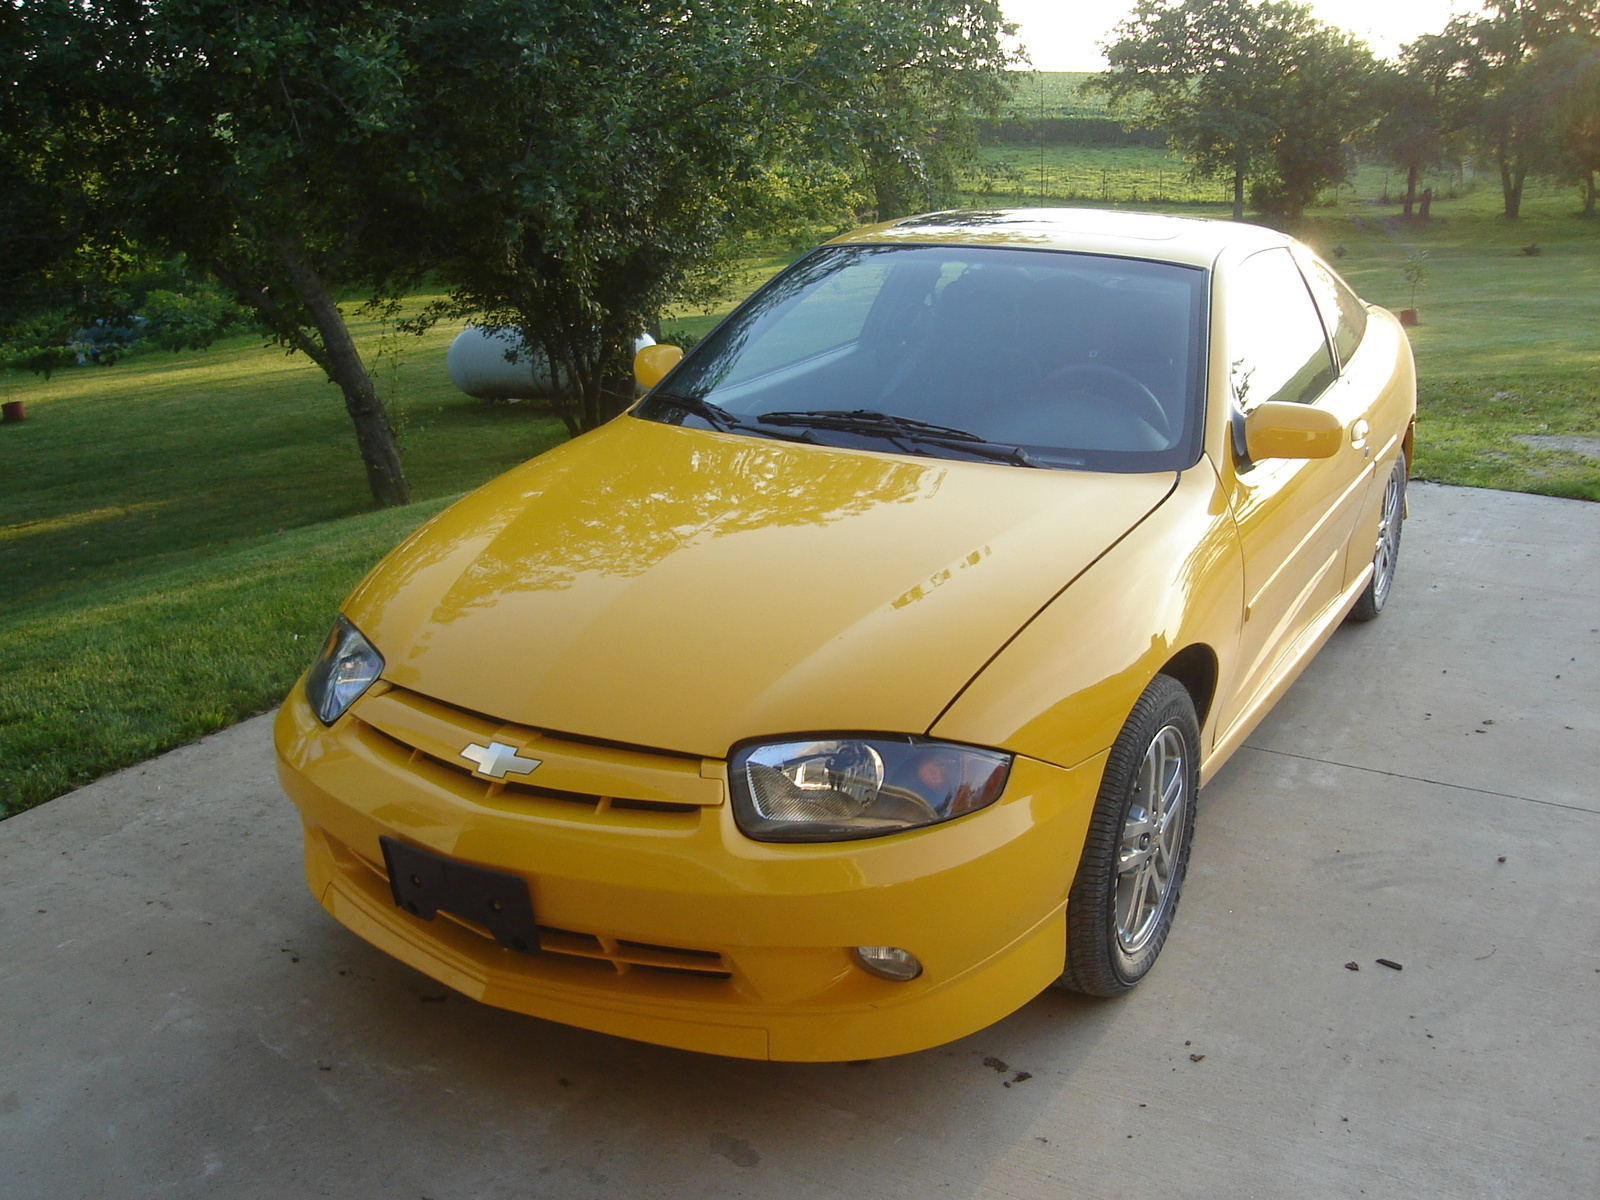 Chevrolet Cavalier Ls Sport Pic X on 02 Cavalier Z24